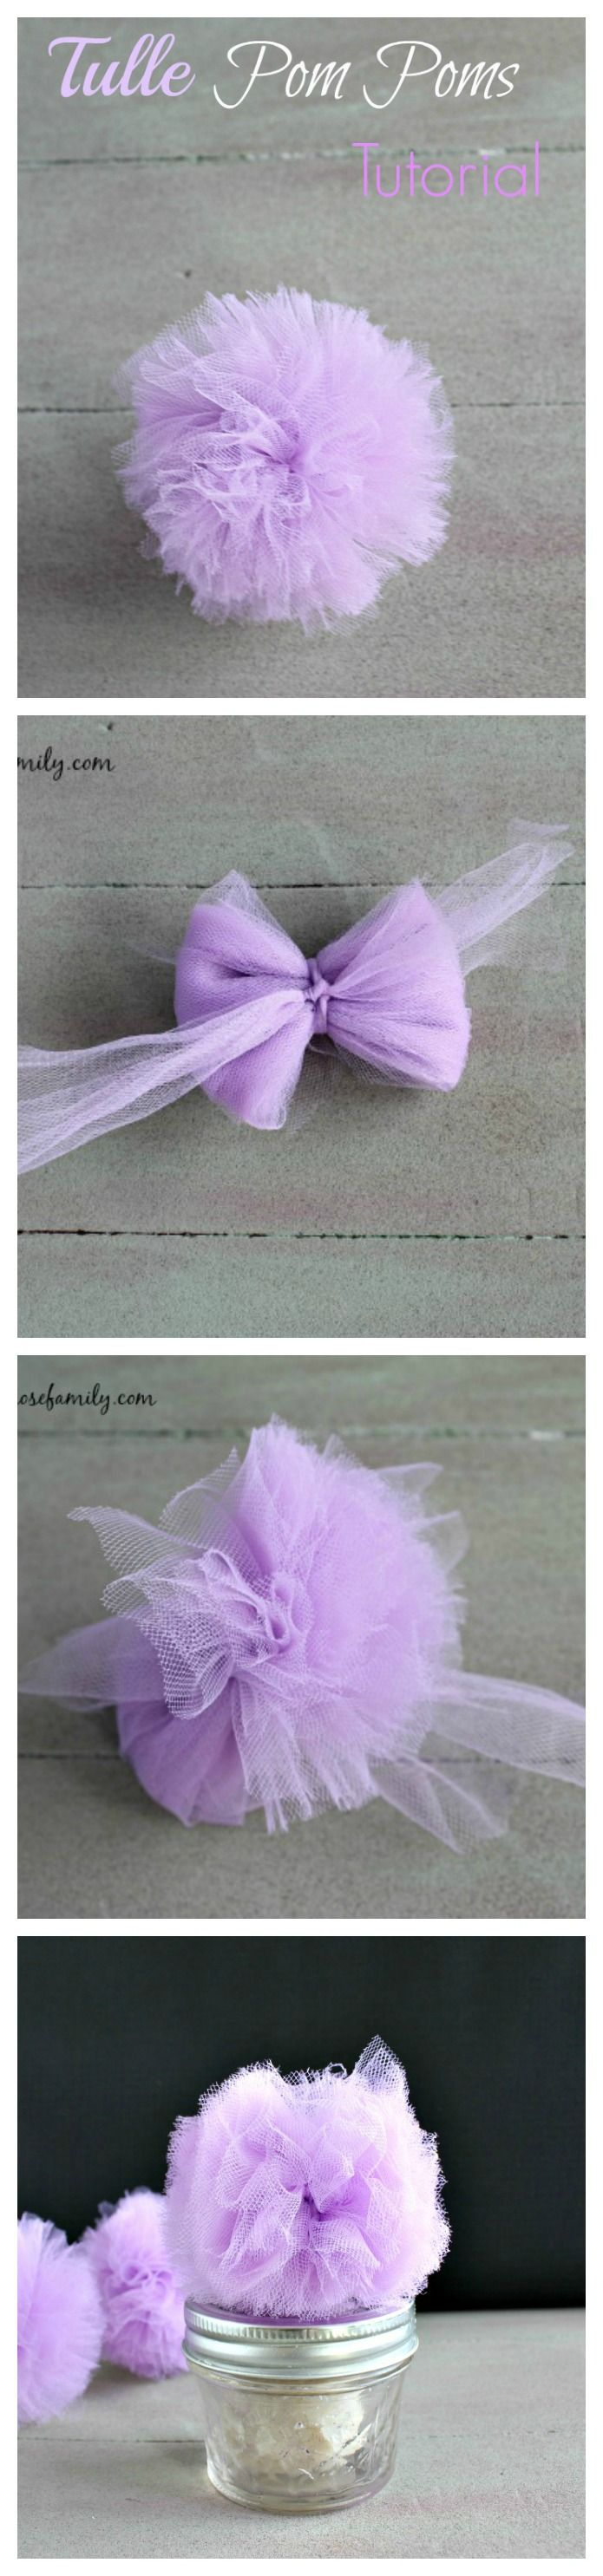 Tulle Pom Poms Tutorial for party favors or decorations. pompom